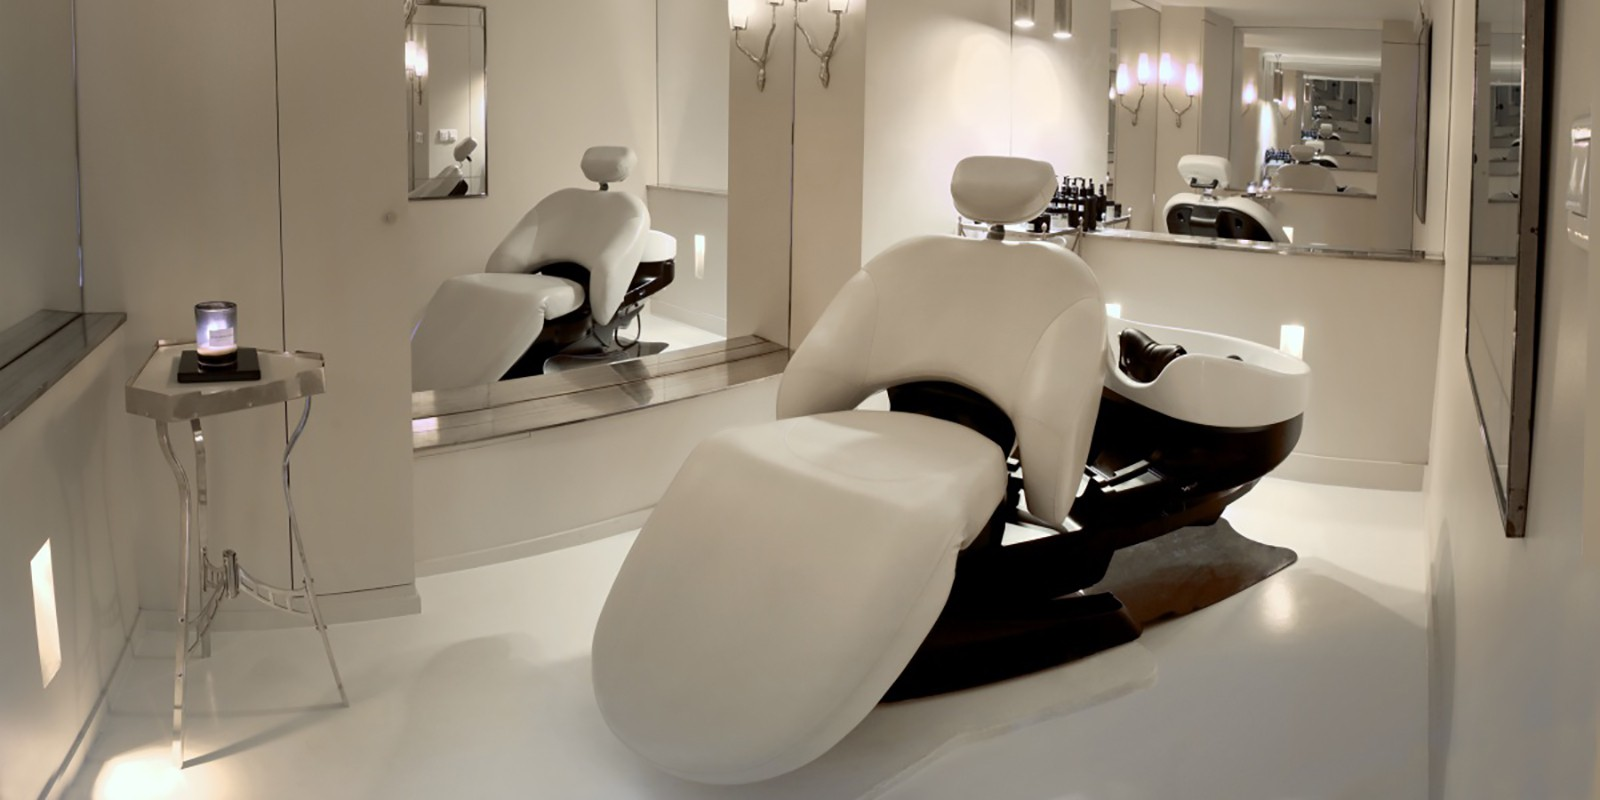 Salon David Mallett David Mallett Paris Salons In Paris The Leading Salons Of The World